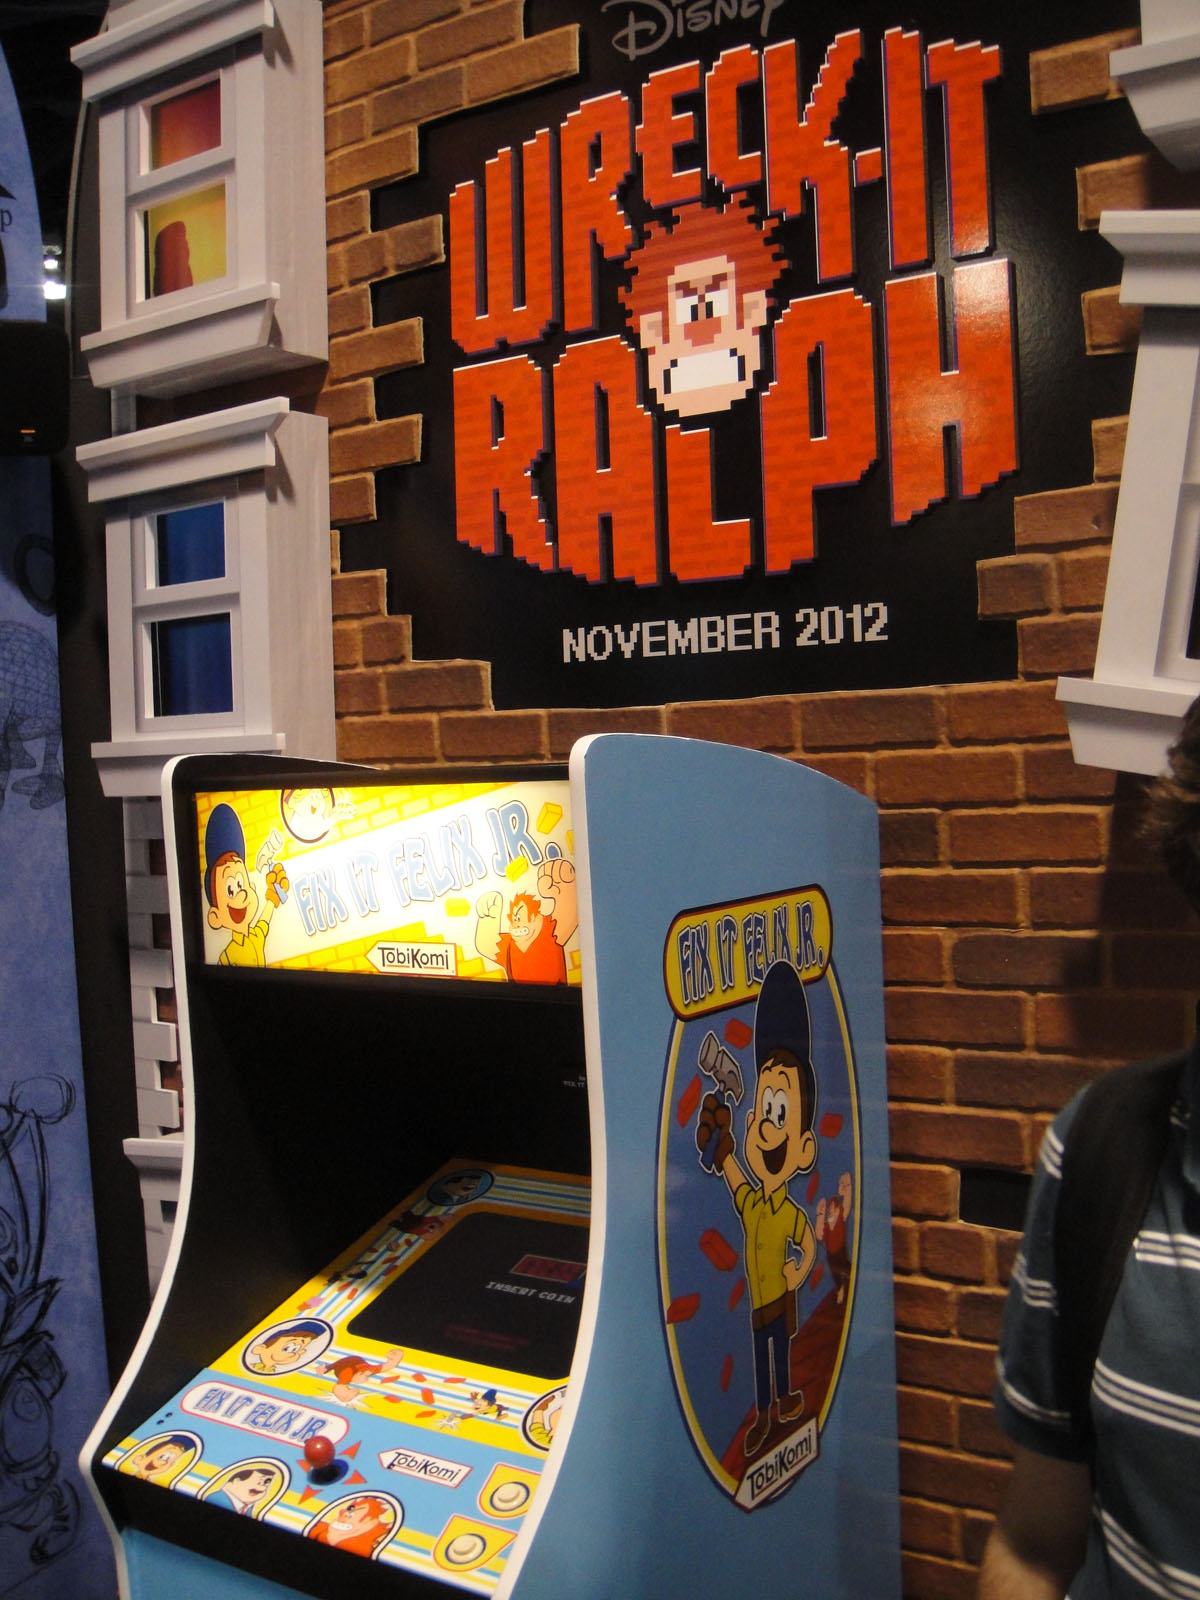 Wreck It Ralph Wikipedia La Enciclopedia Libre